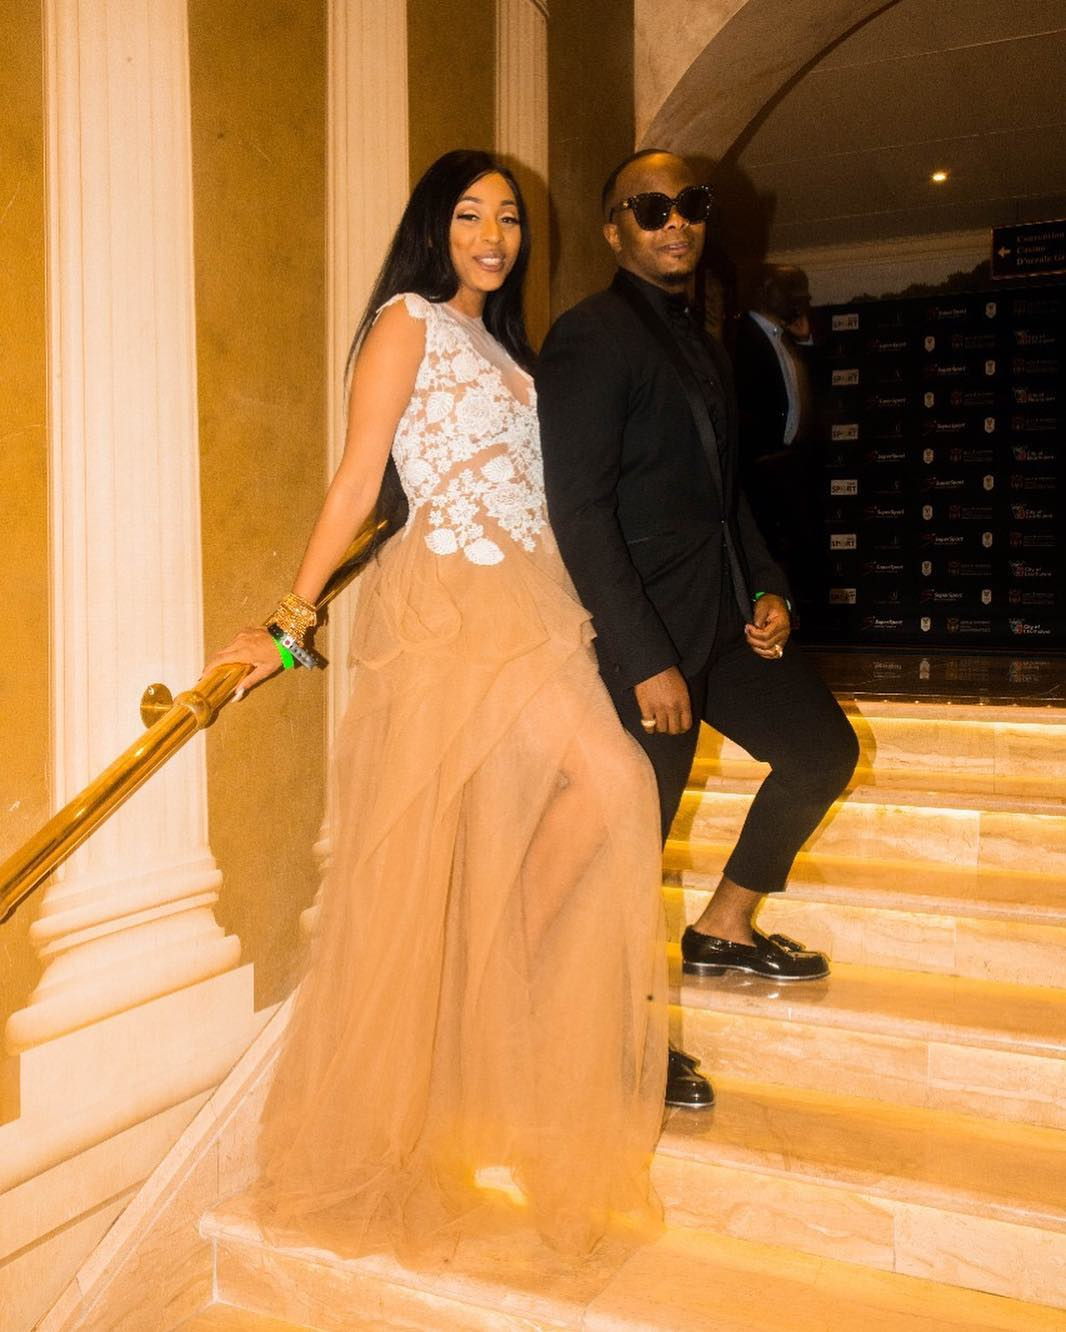 Bandile Mbere confirms he is dating Nadia Nakai